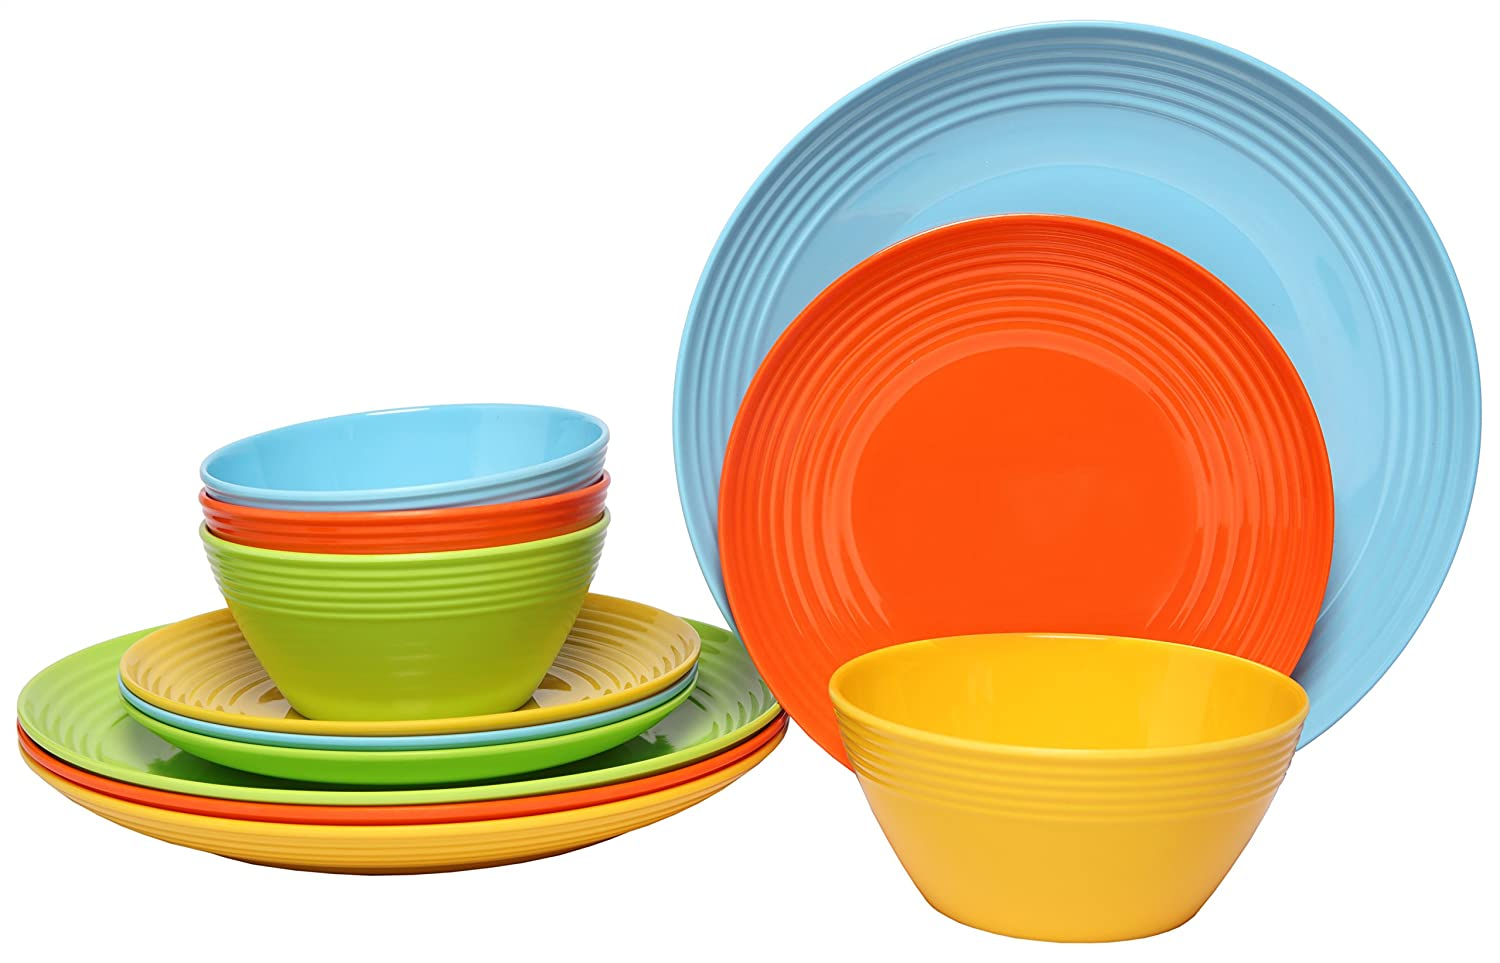 Melange 12-PieceMelamine Dinnerware Set (Solids Collection ) | Shatter-Proof and Chip-Resistant Melamine Plates and Bowls | Color: Multicolor | Dinner Plate, Salad Plate & Soup Bowl (4 Each)